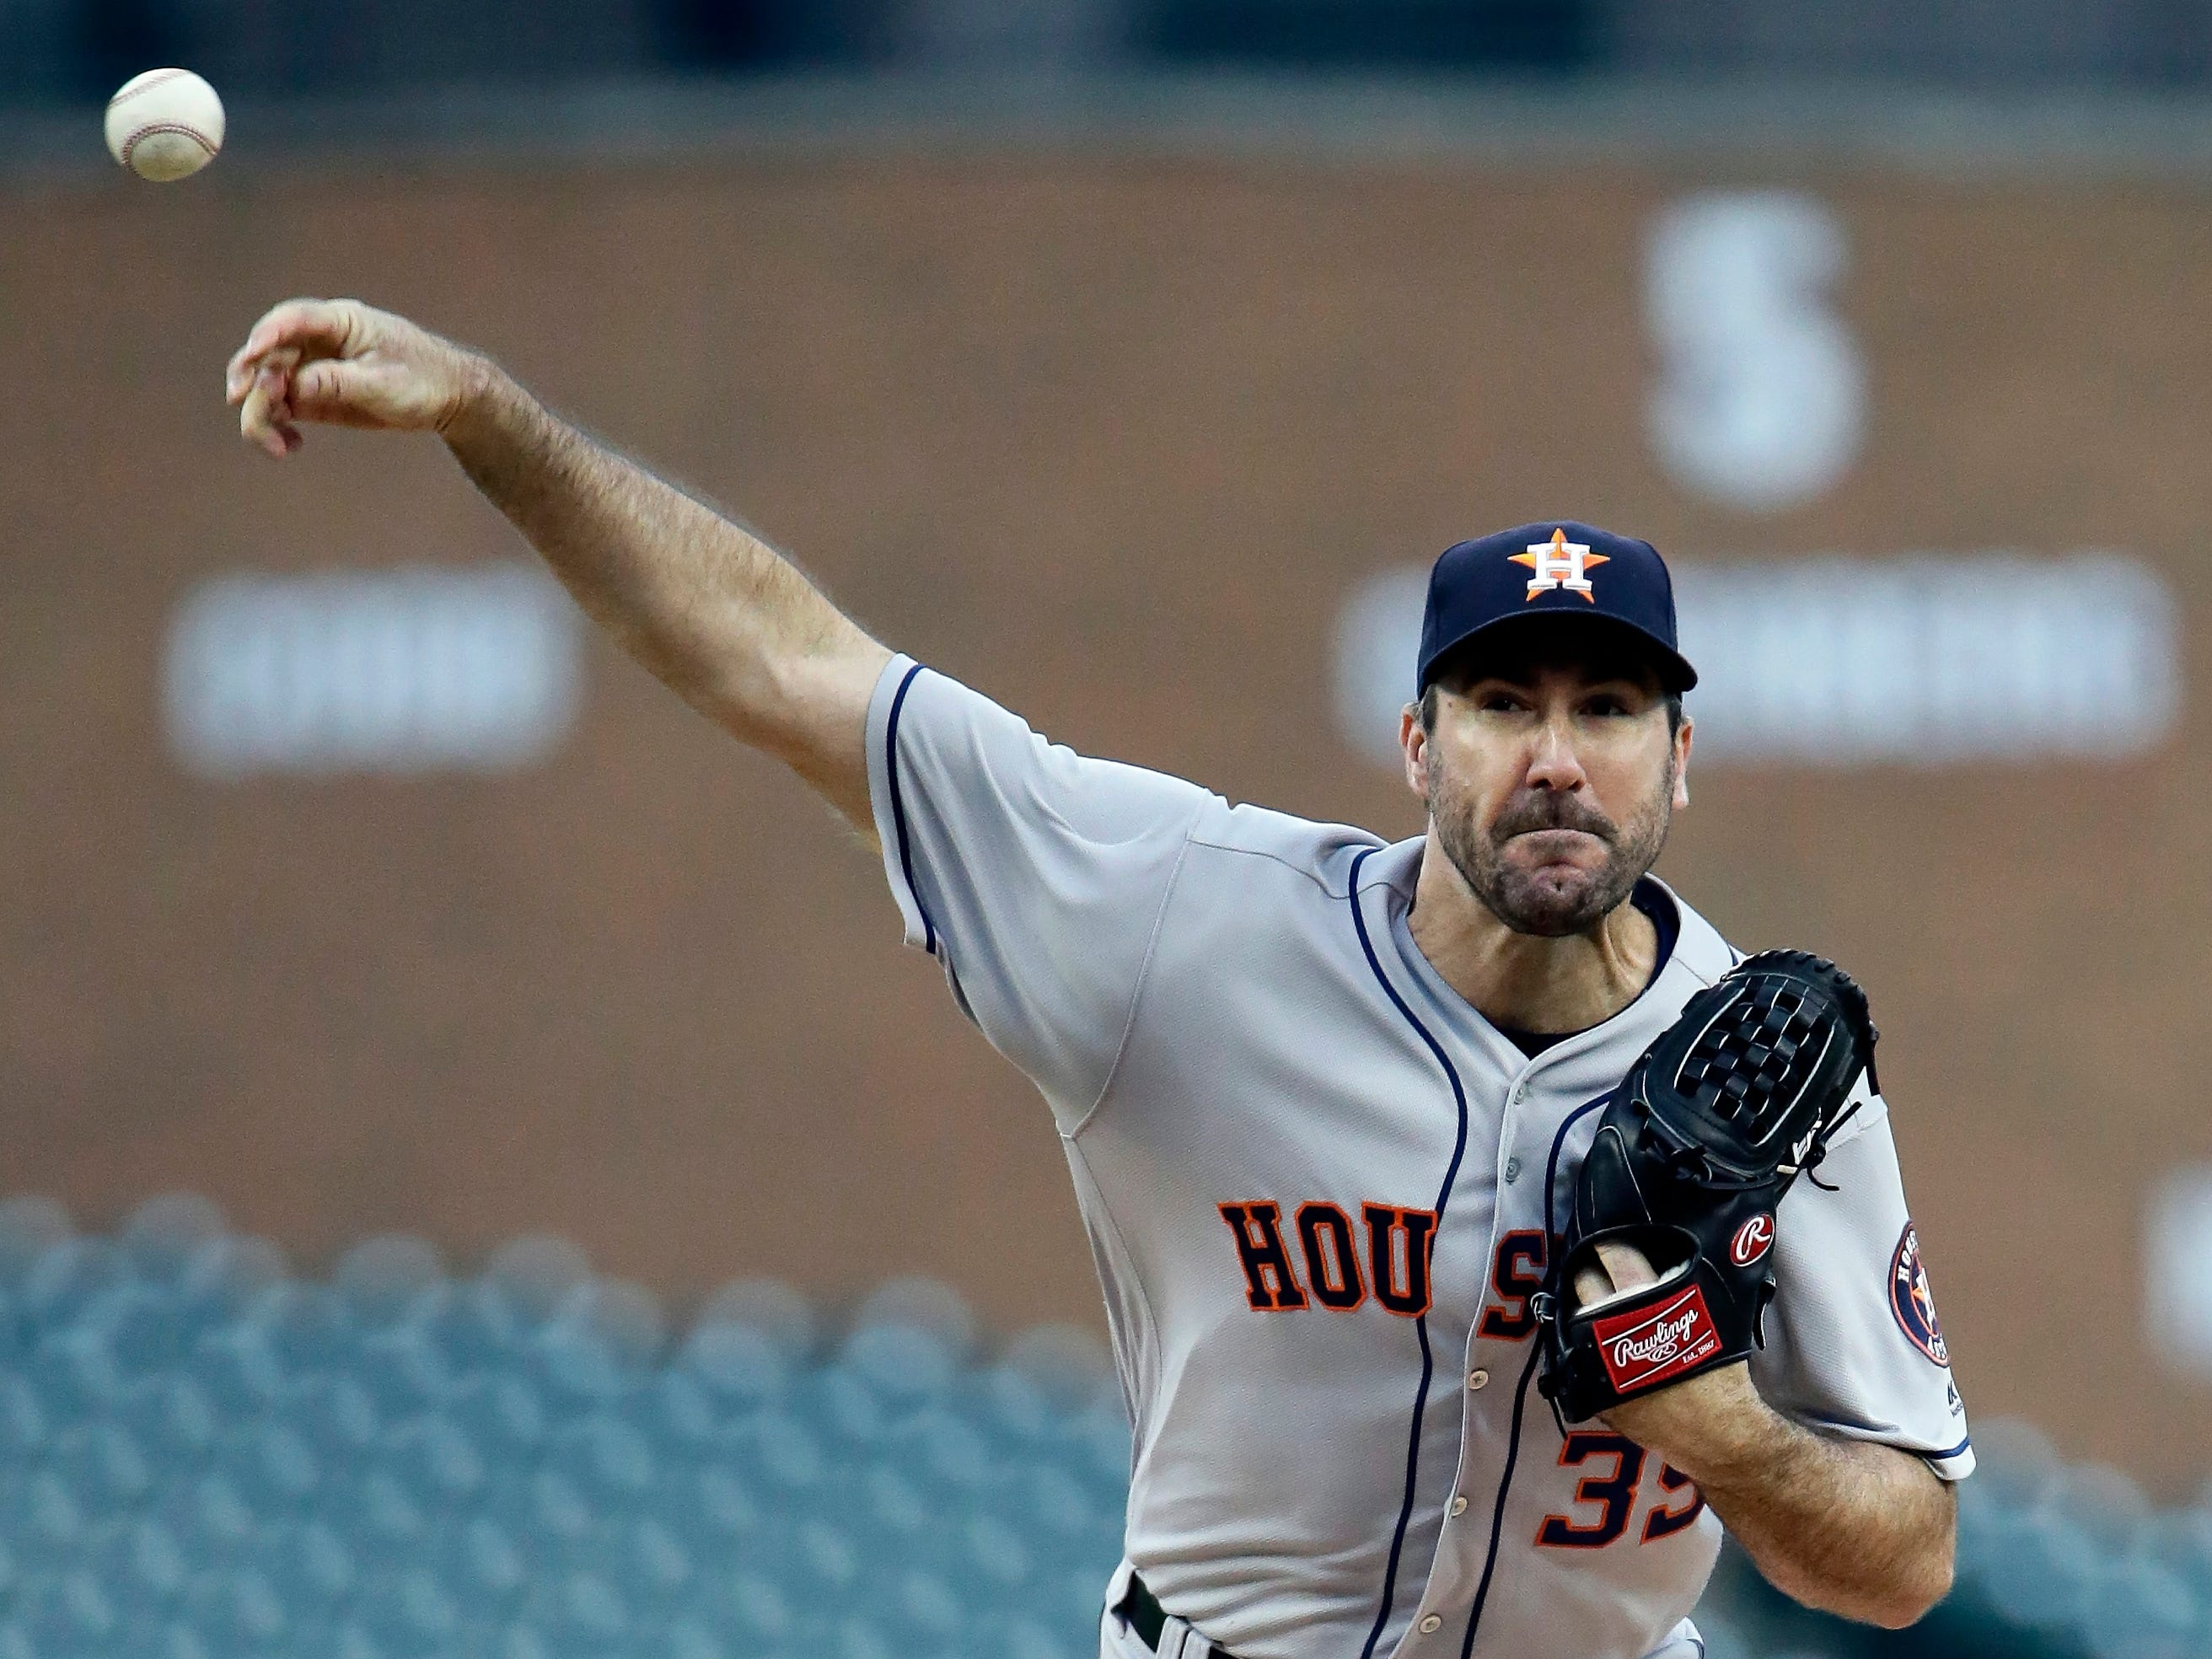 Houston Astros starting pitcher Justin Verlander (35) pitches against the Detroit Tigers during the first inning.